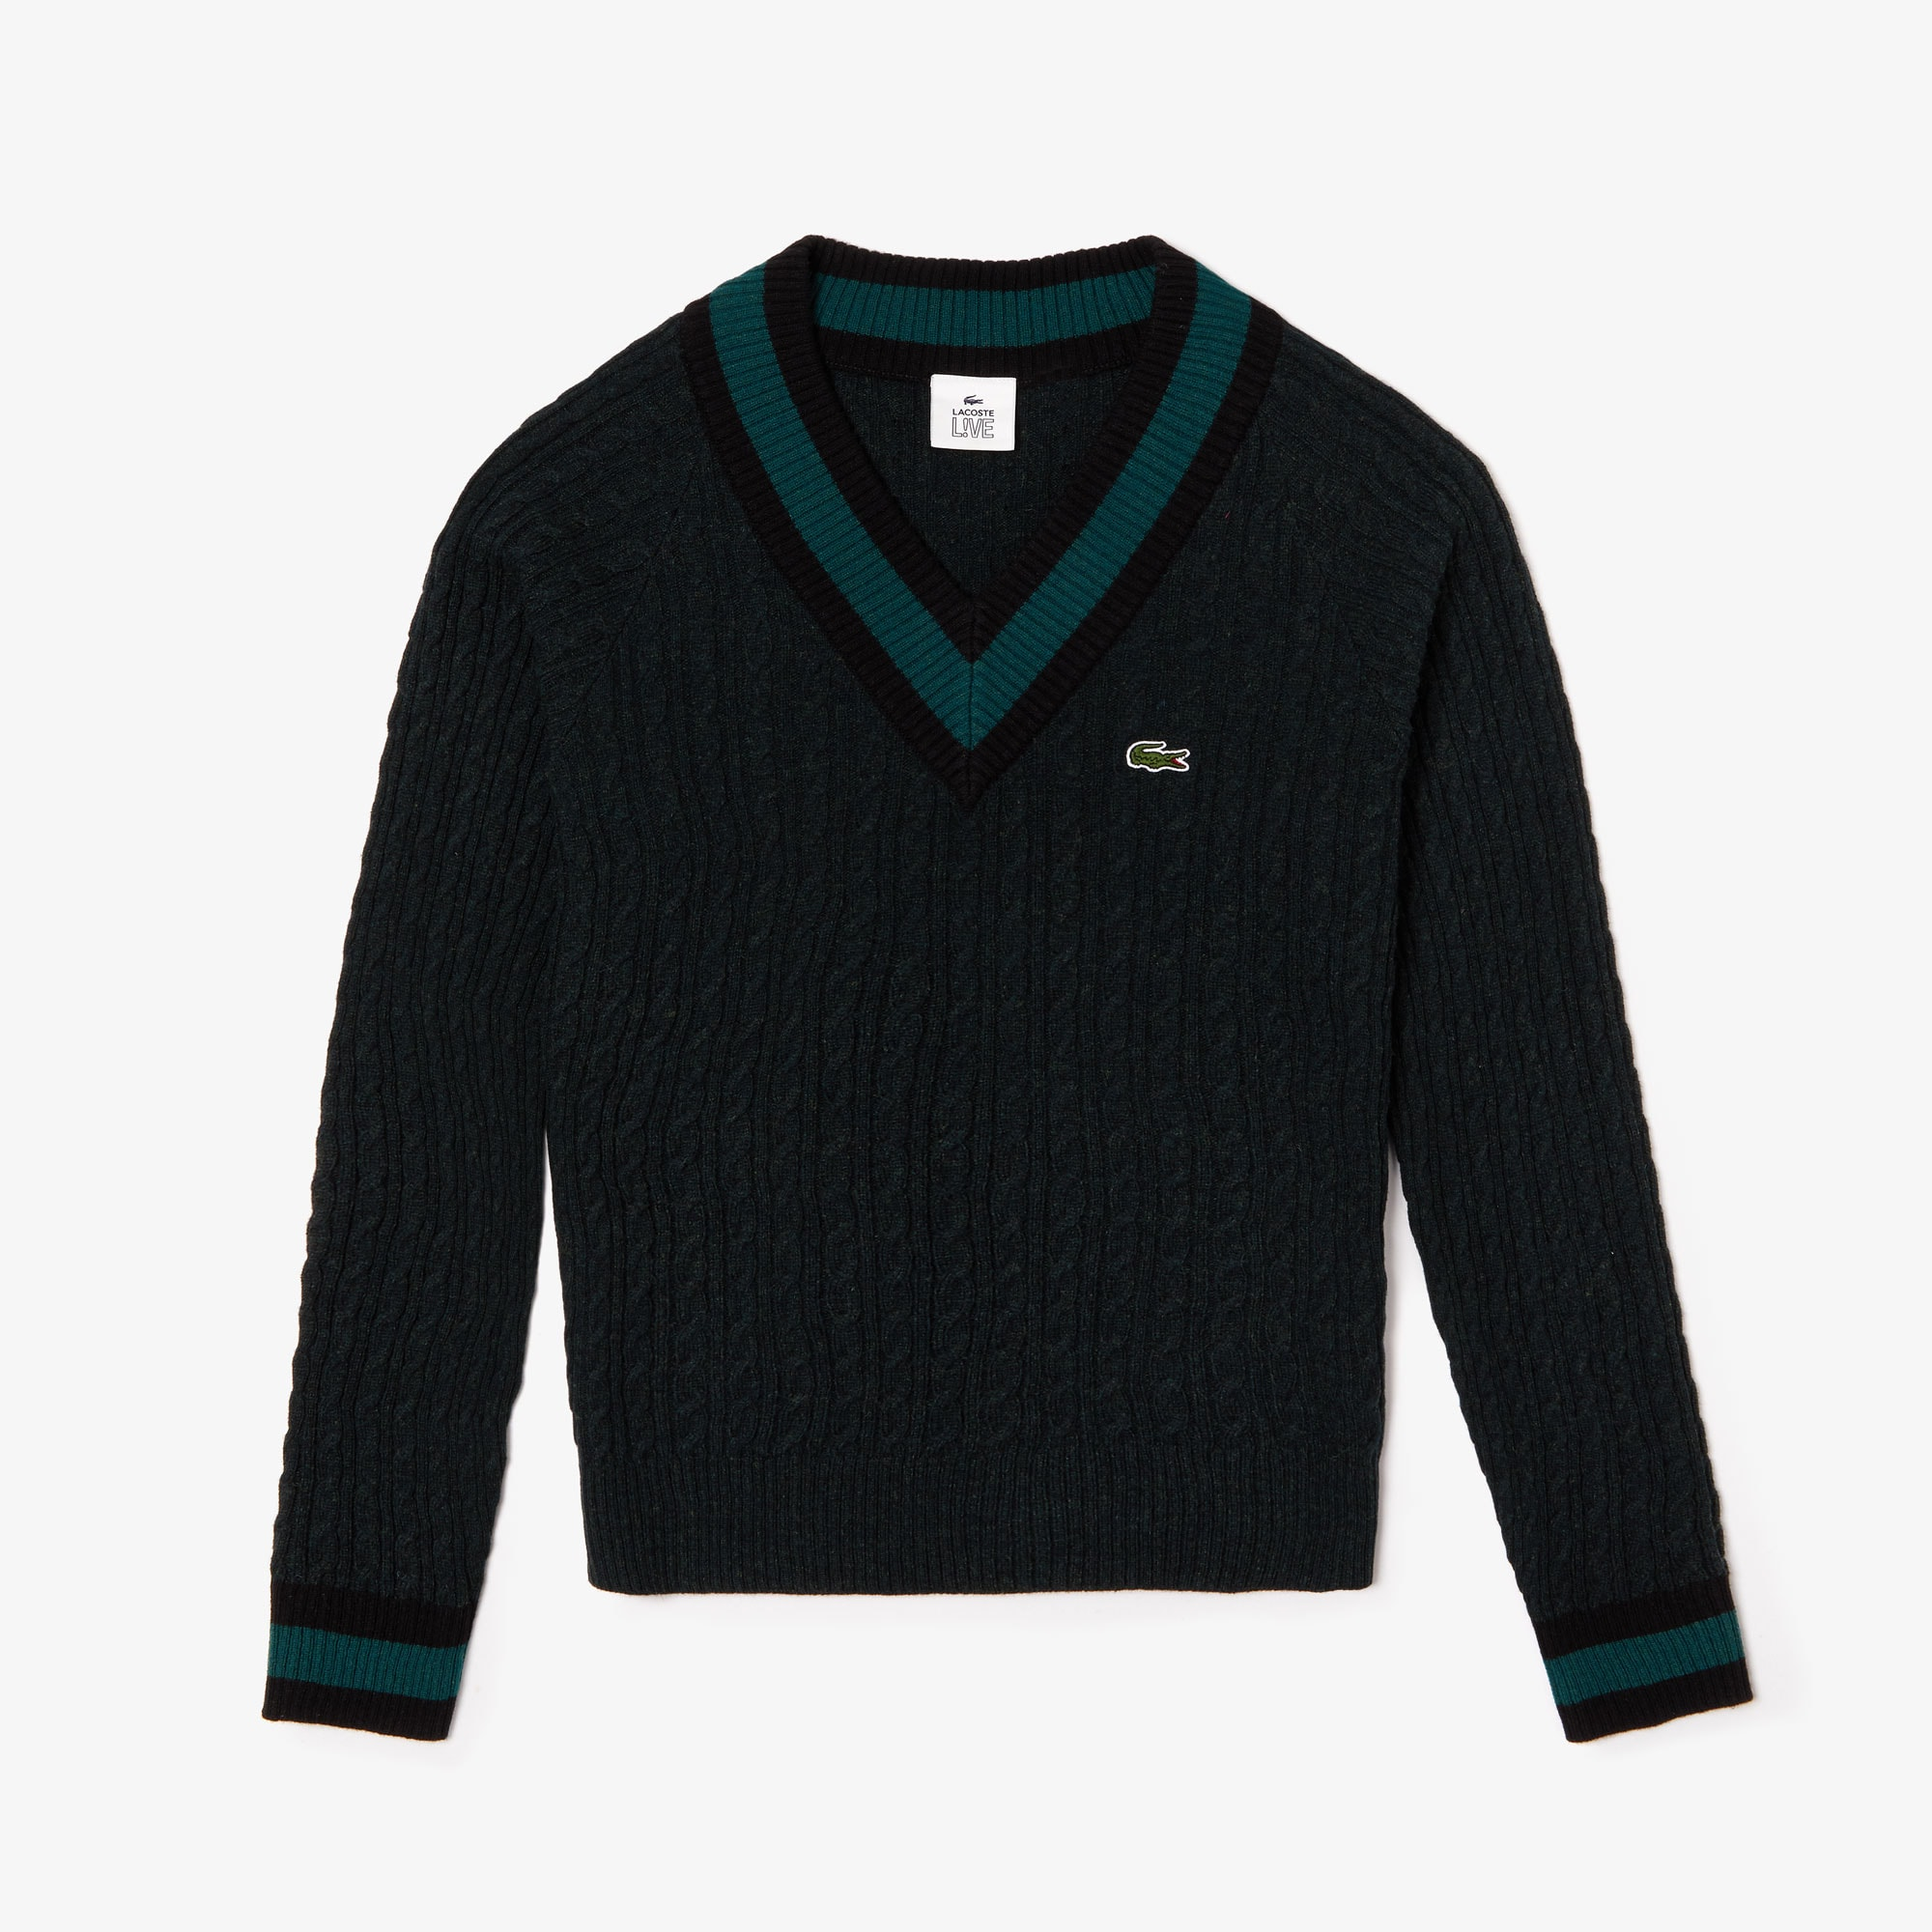 Unisex LIVE Cable Knit Wool Blend Sweater